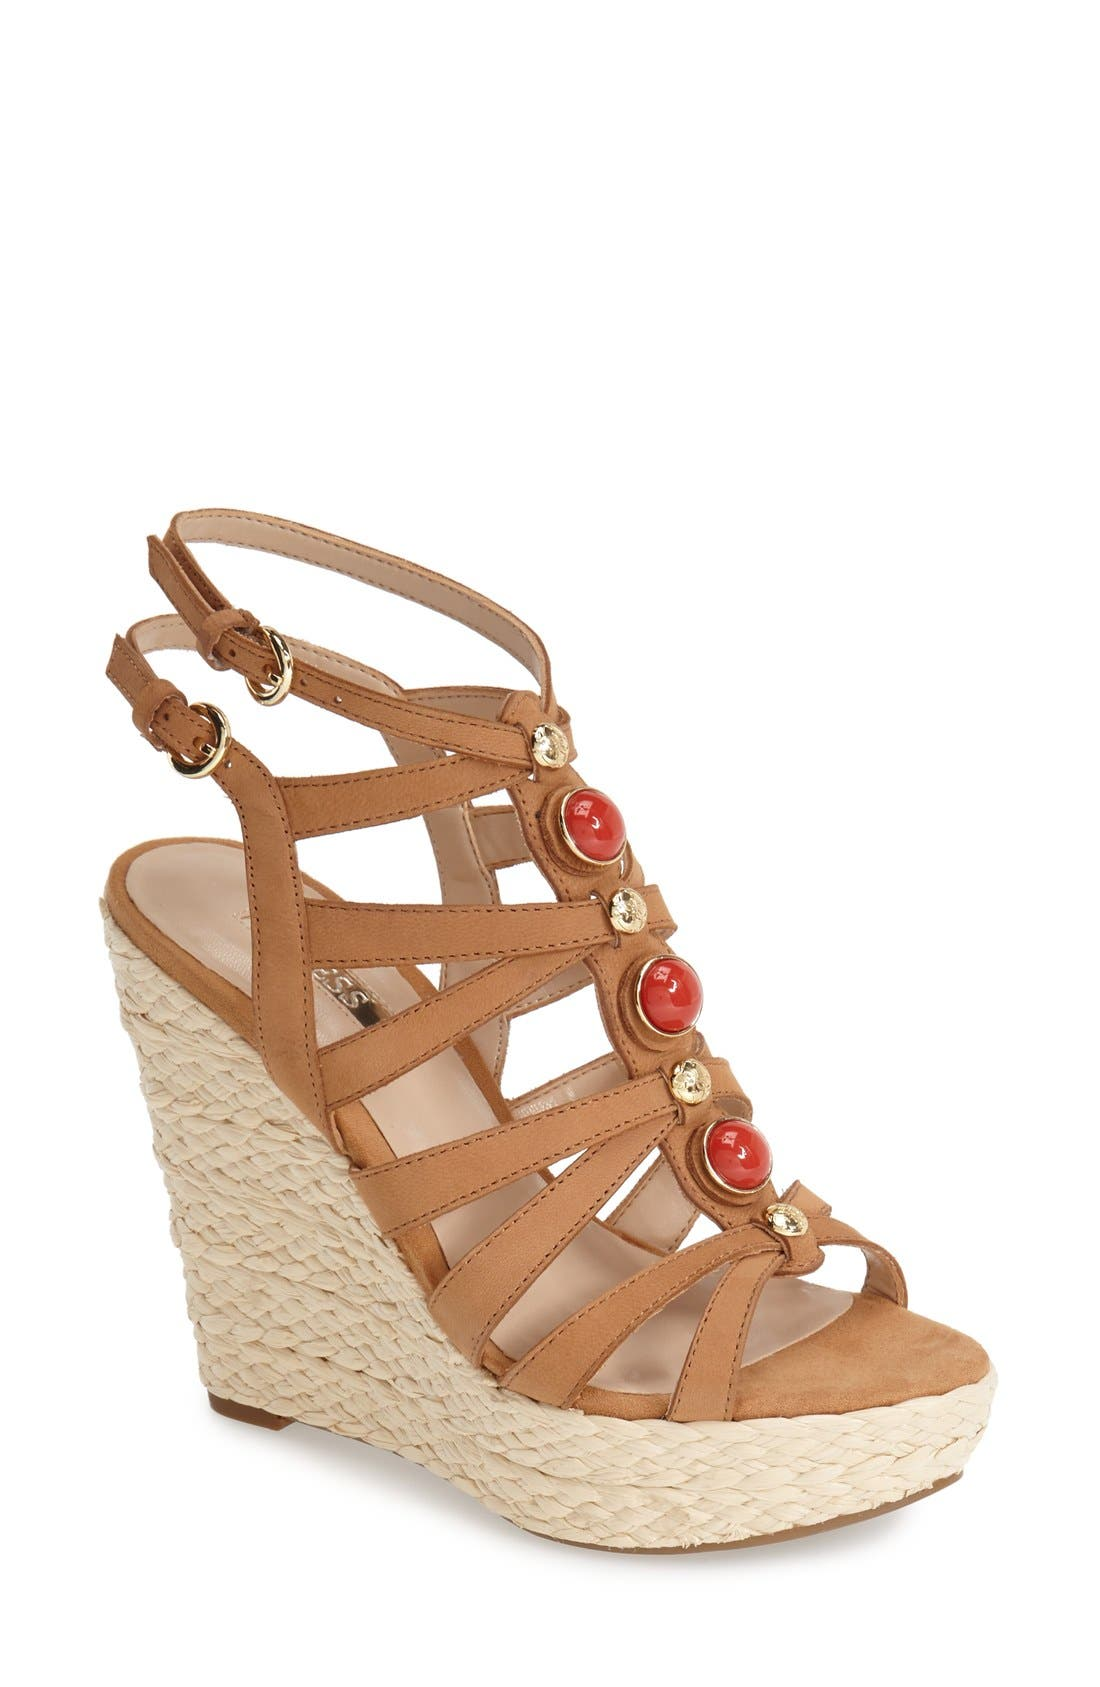 Alternate Image 1 Selected - GUESS 'Onixx' Snake Embossed Leather Wedge Sandal (Women)